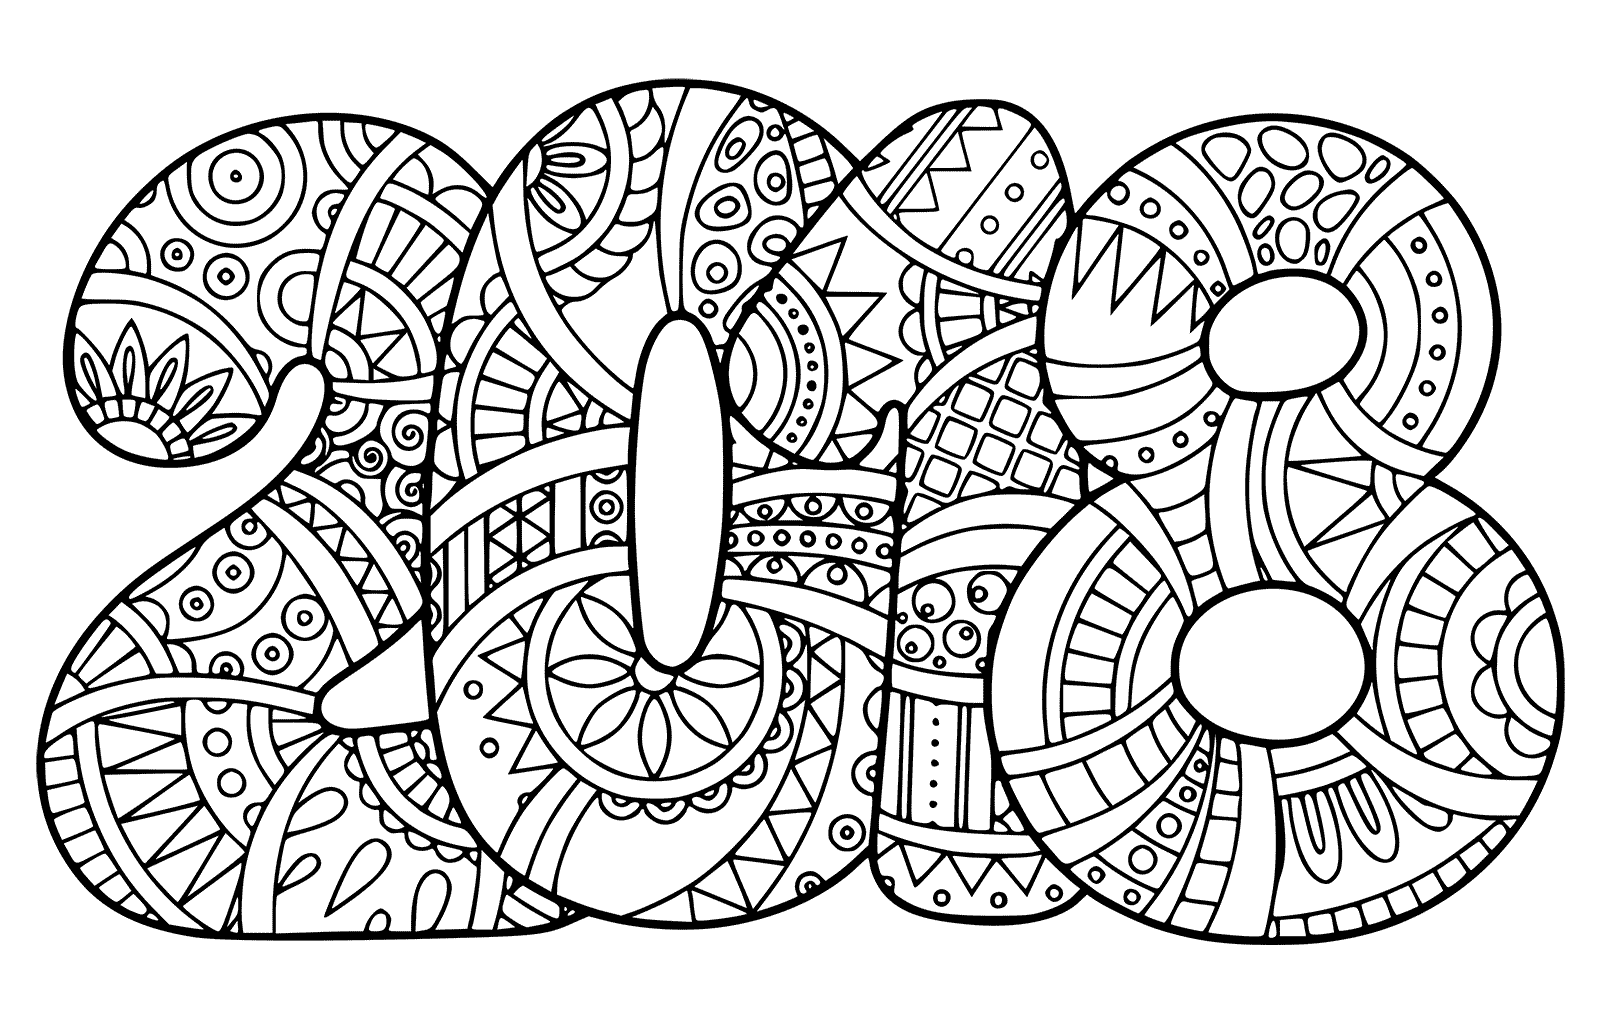 New Year 2018 Coloring Page Doodle Coloring Pages Coloring Books New Year Coloring Pages